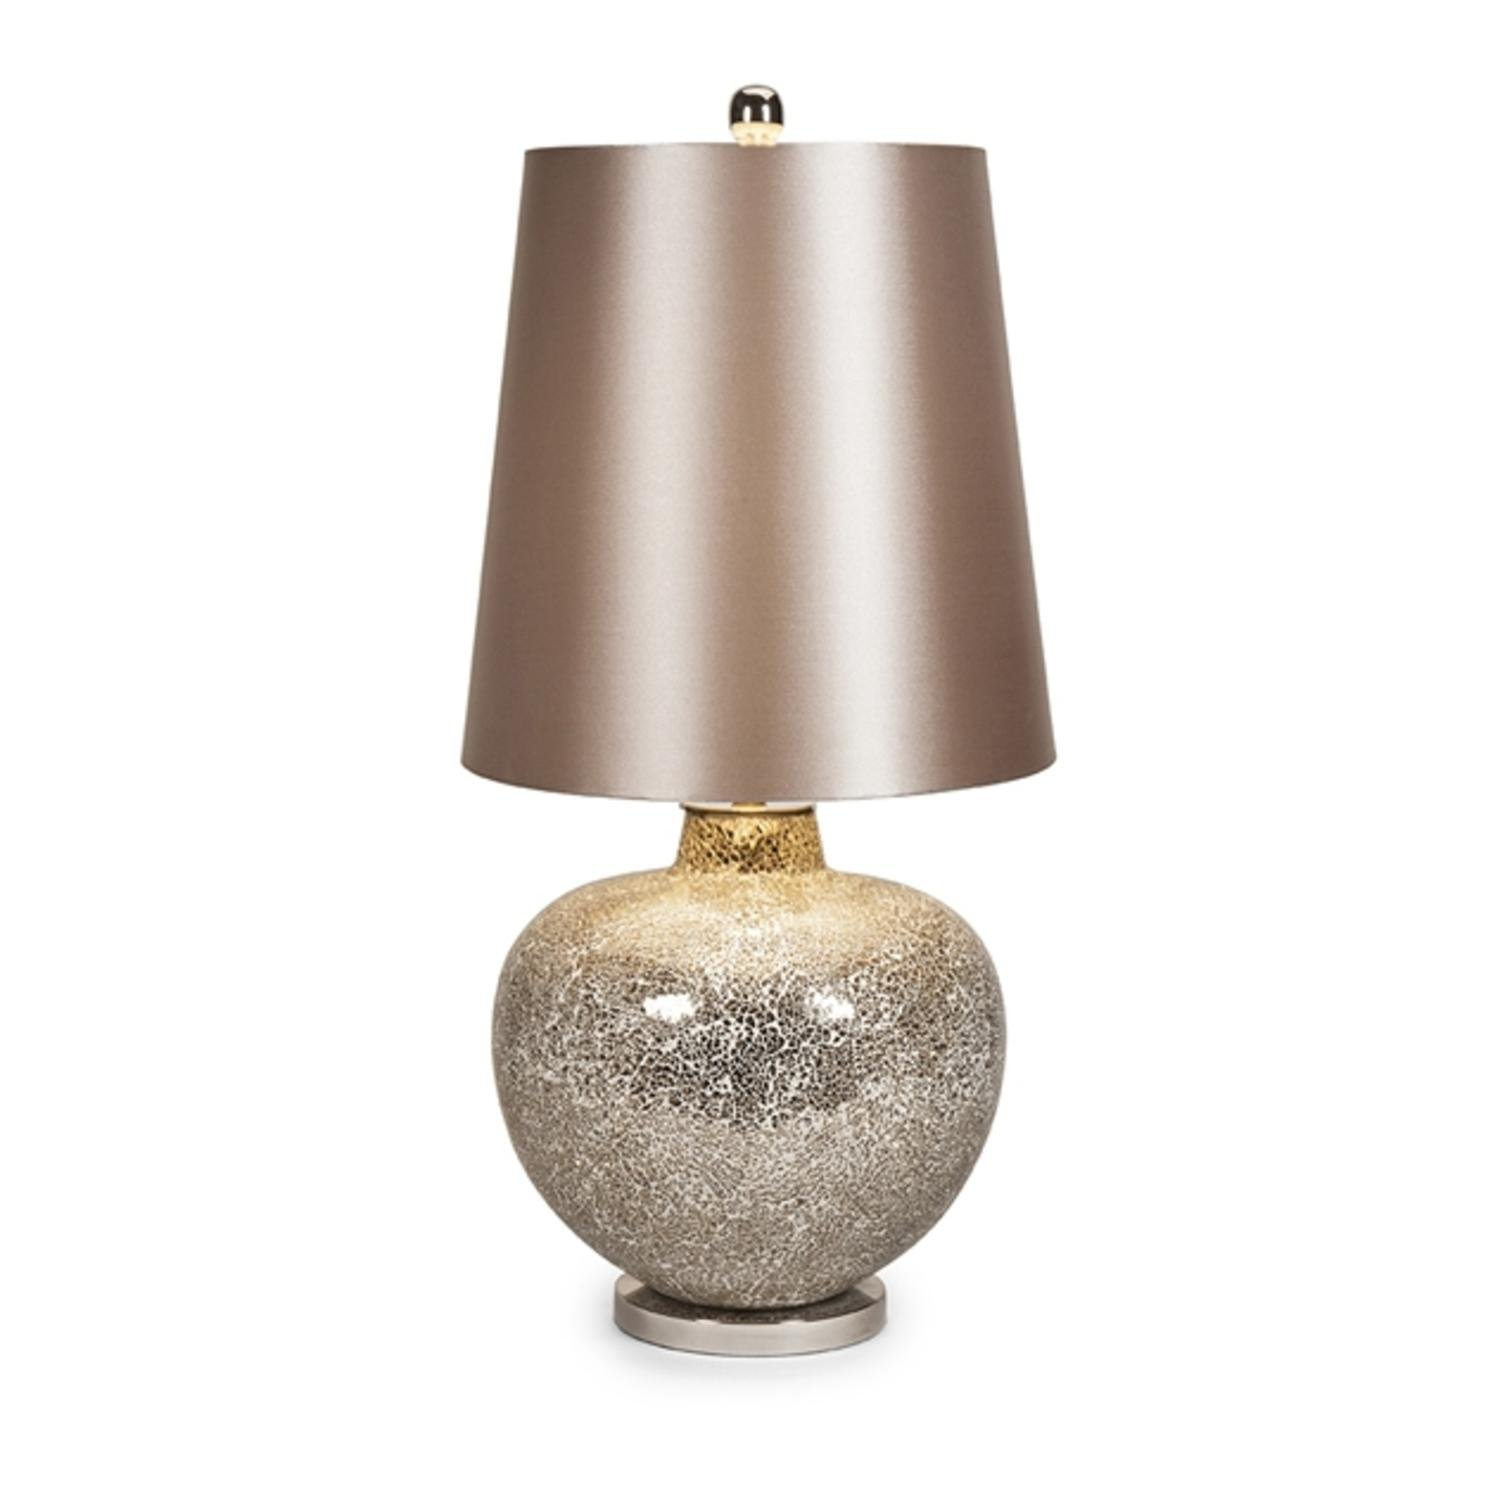 35'' Mosaic Champagne Glass Lamp with Matching Drum Shade